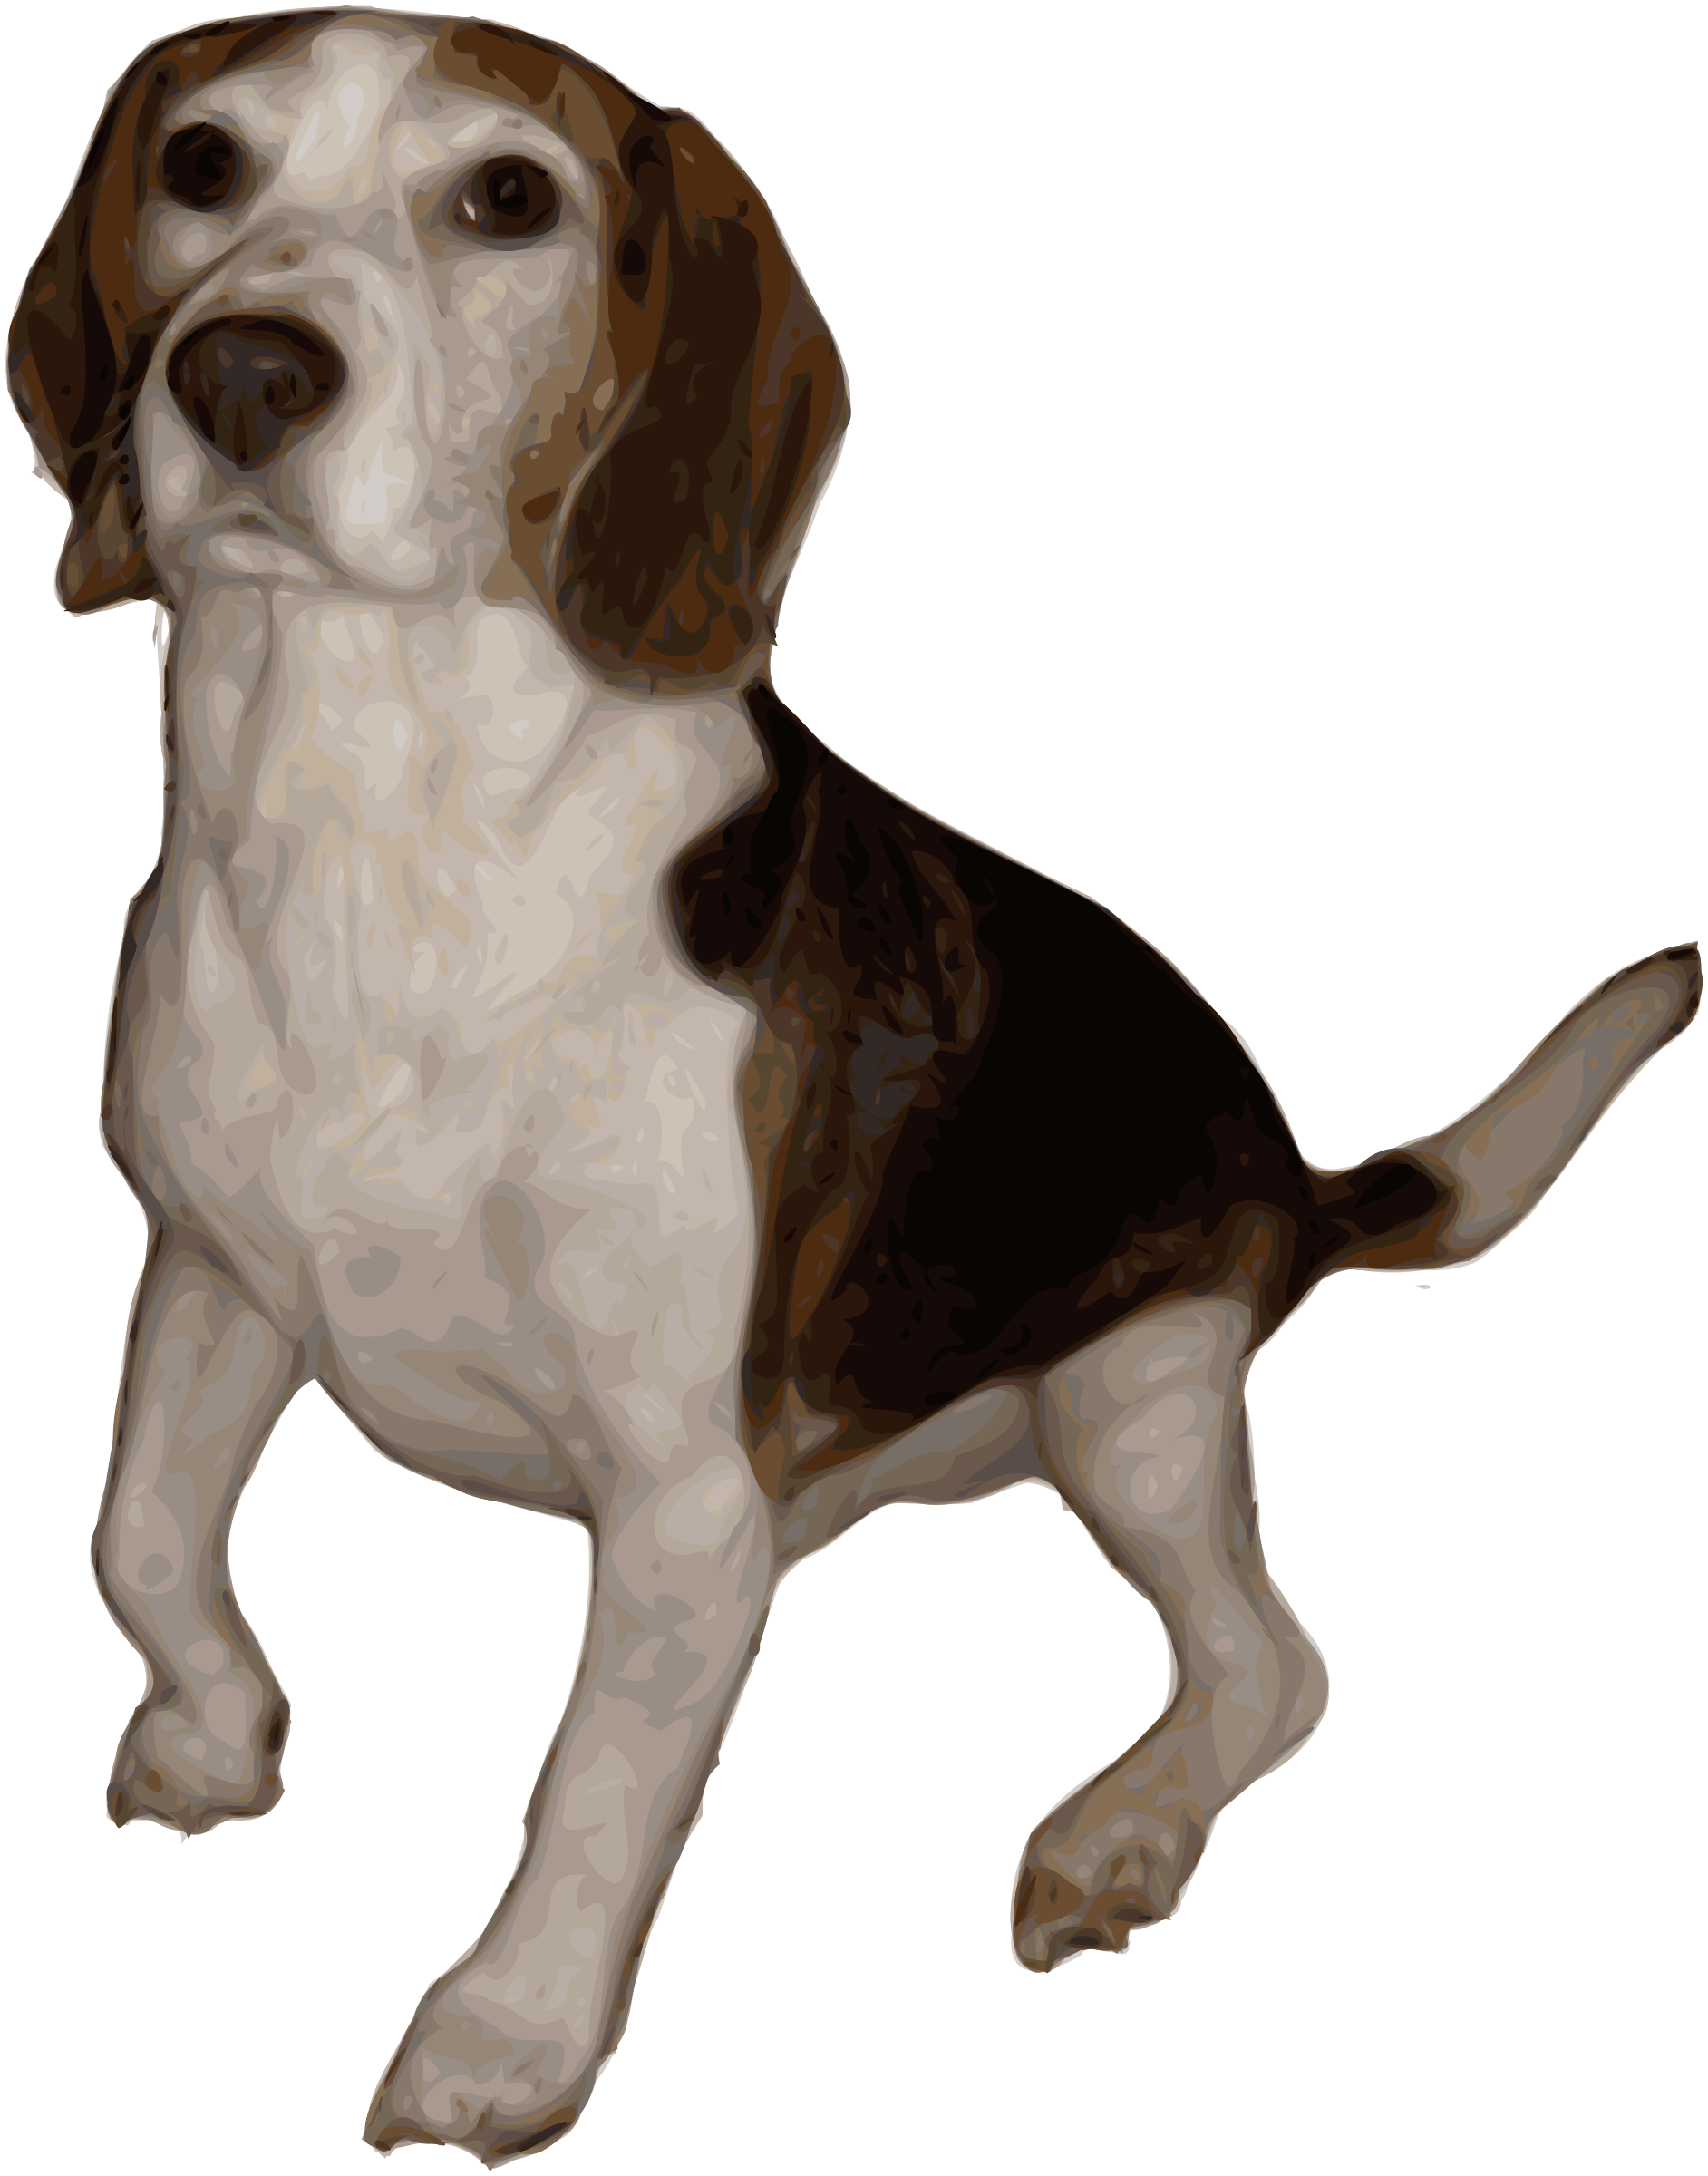 Beagle Small Version by Merlin2525